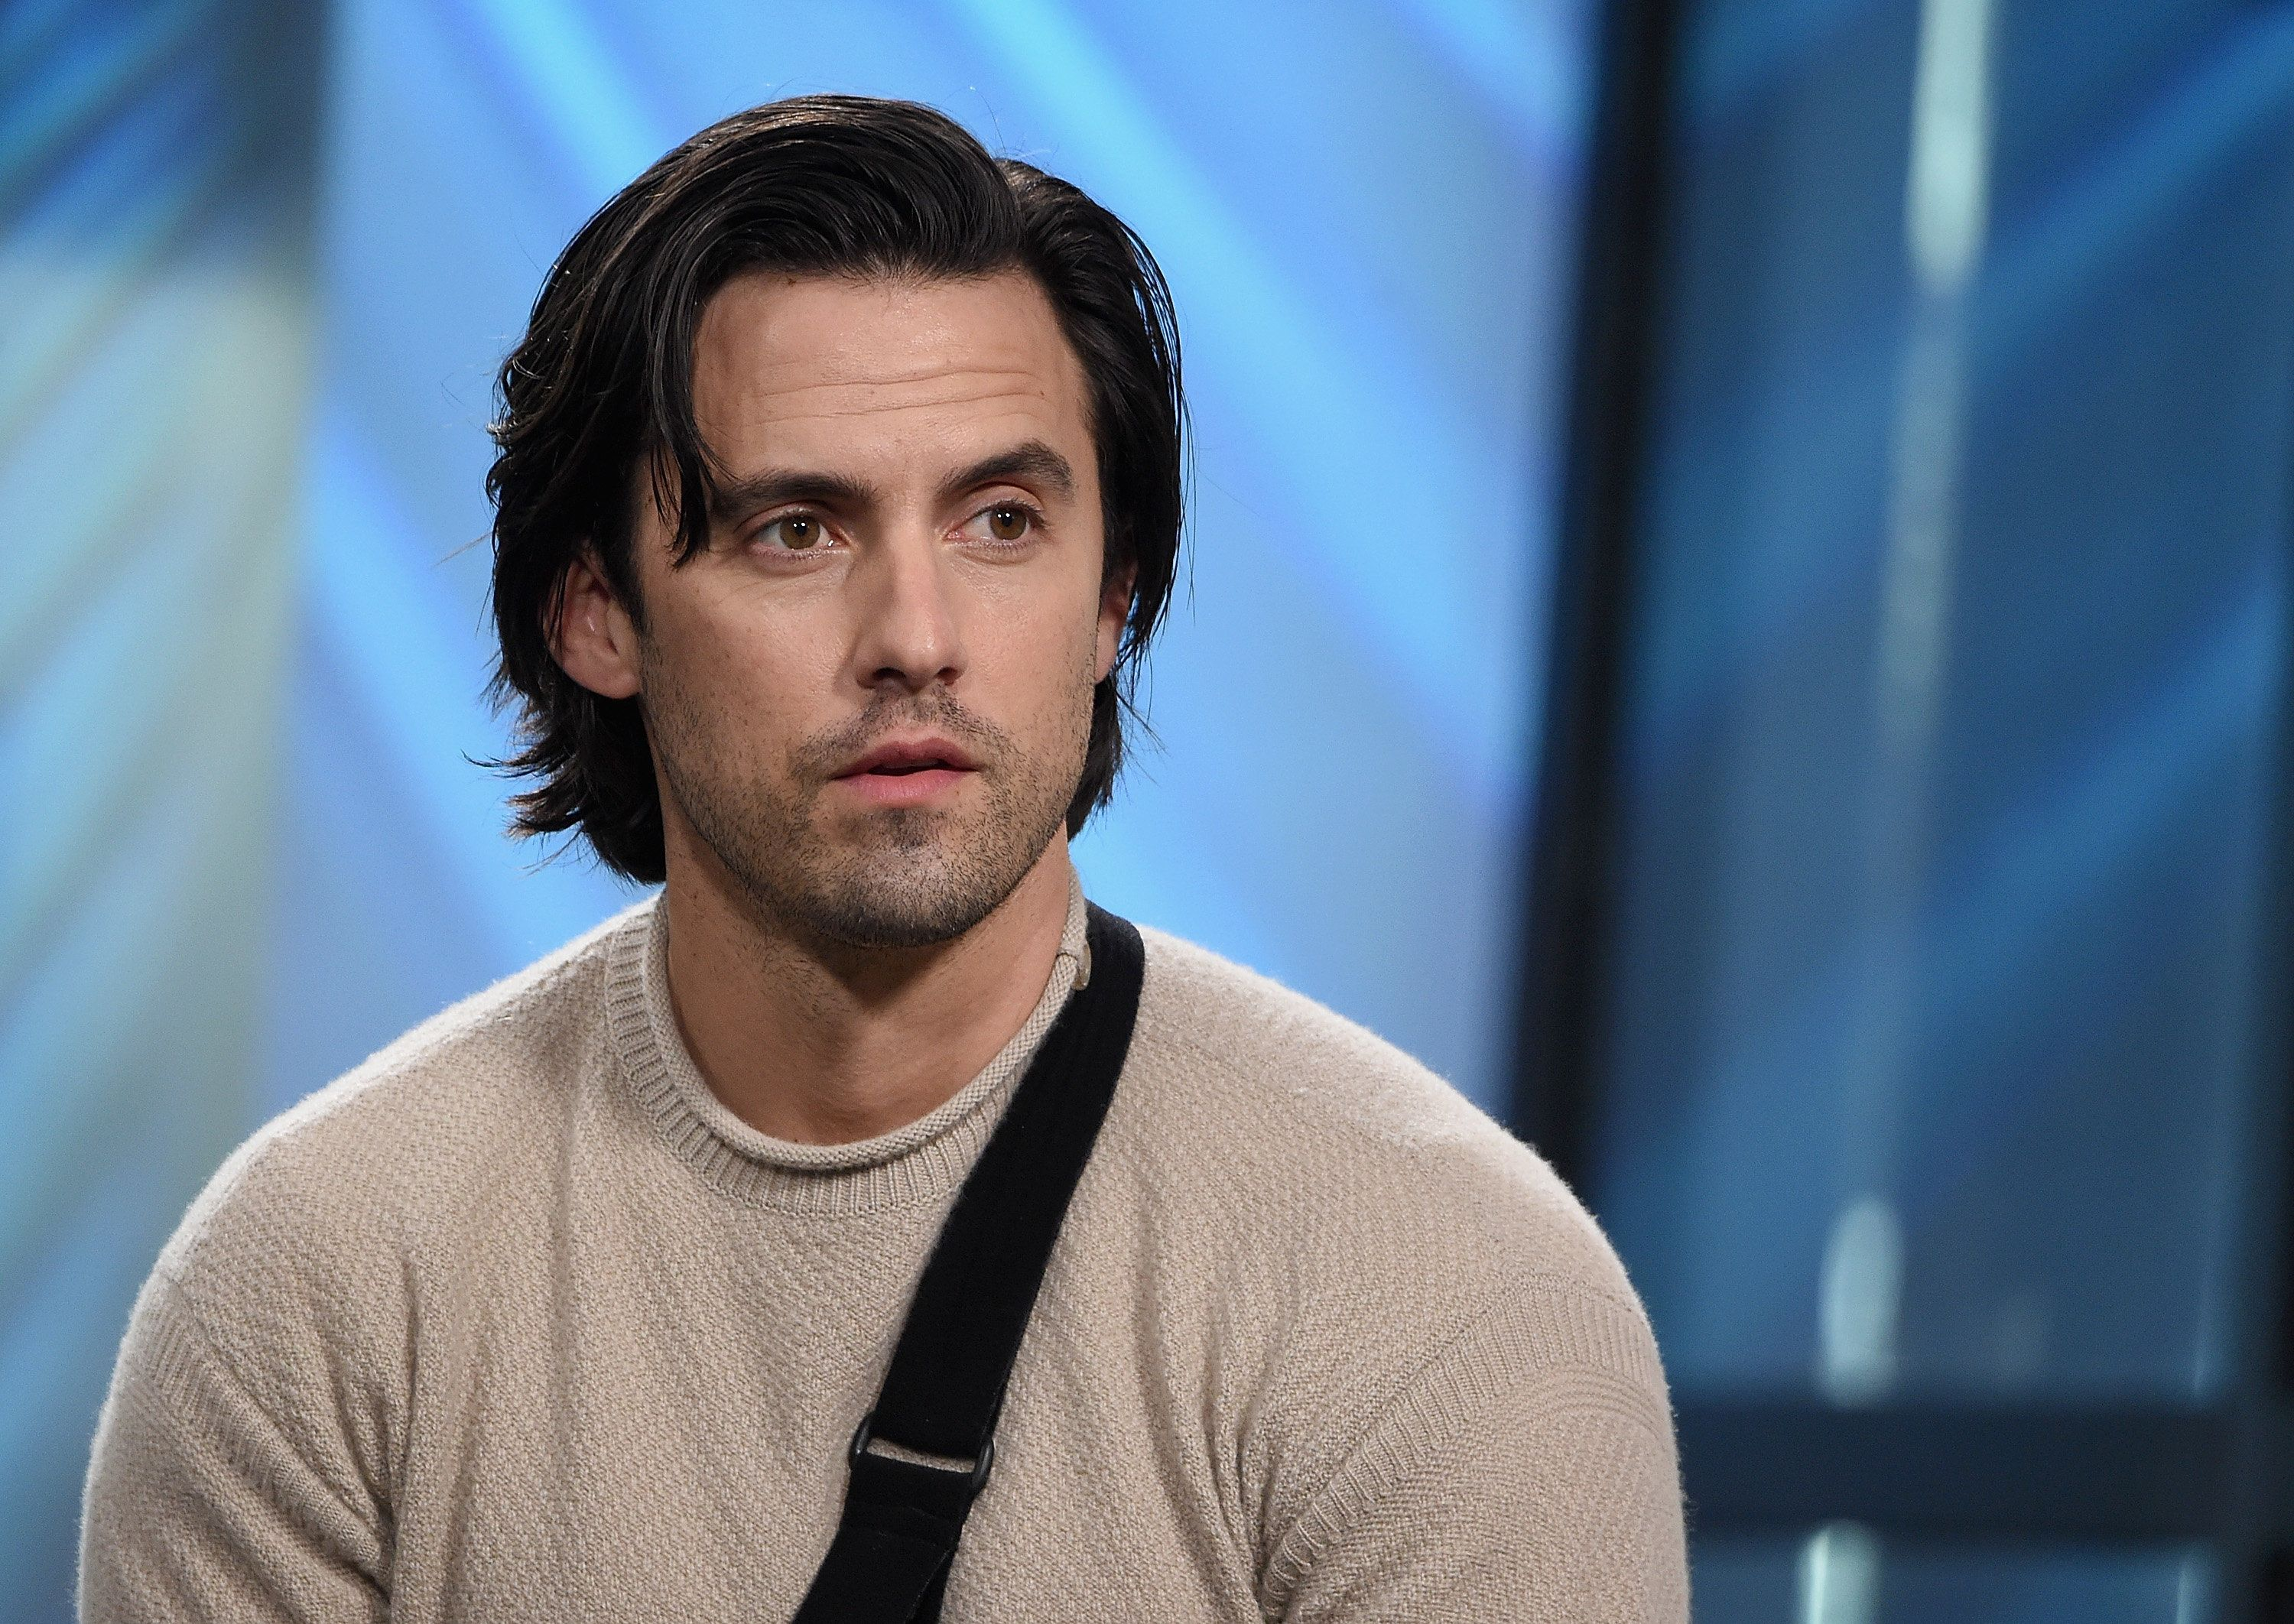 Milo Ventimiglia Doesn t Think There Needs To Be More  Gilmore Girls     Milo Ventimiglia during an interview at the nbsp Build Studio on March 2   2017 in